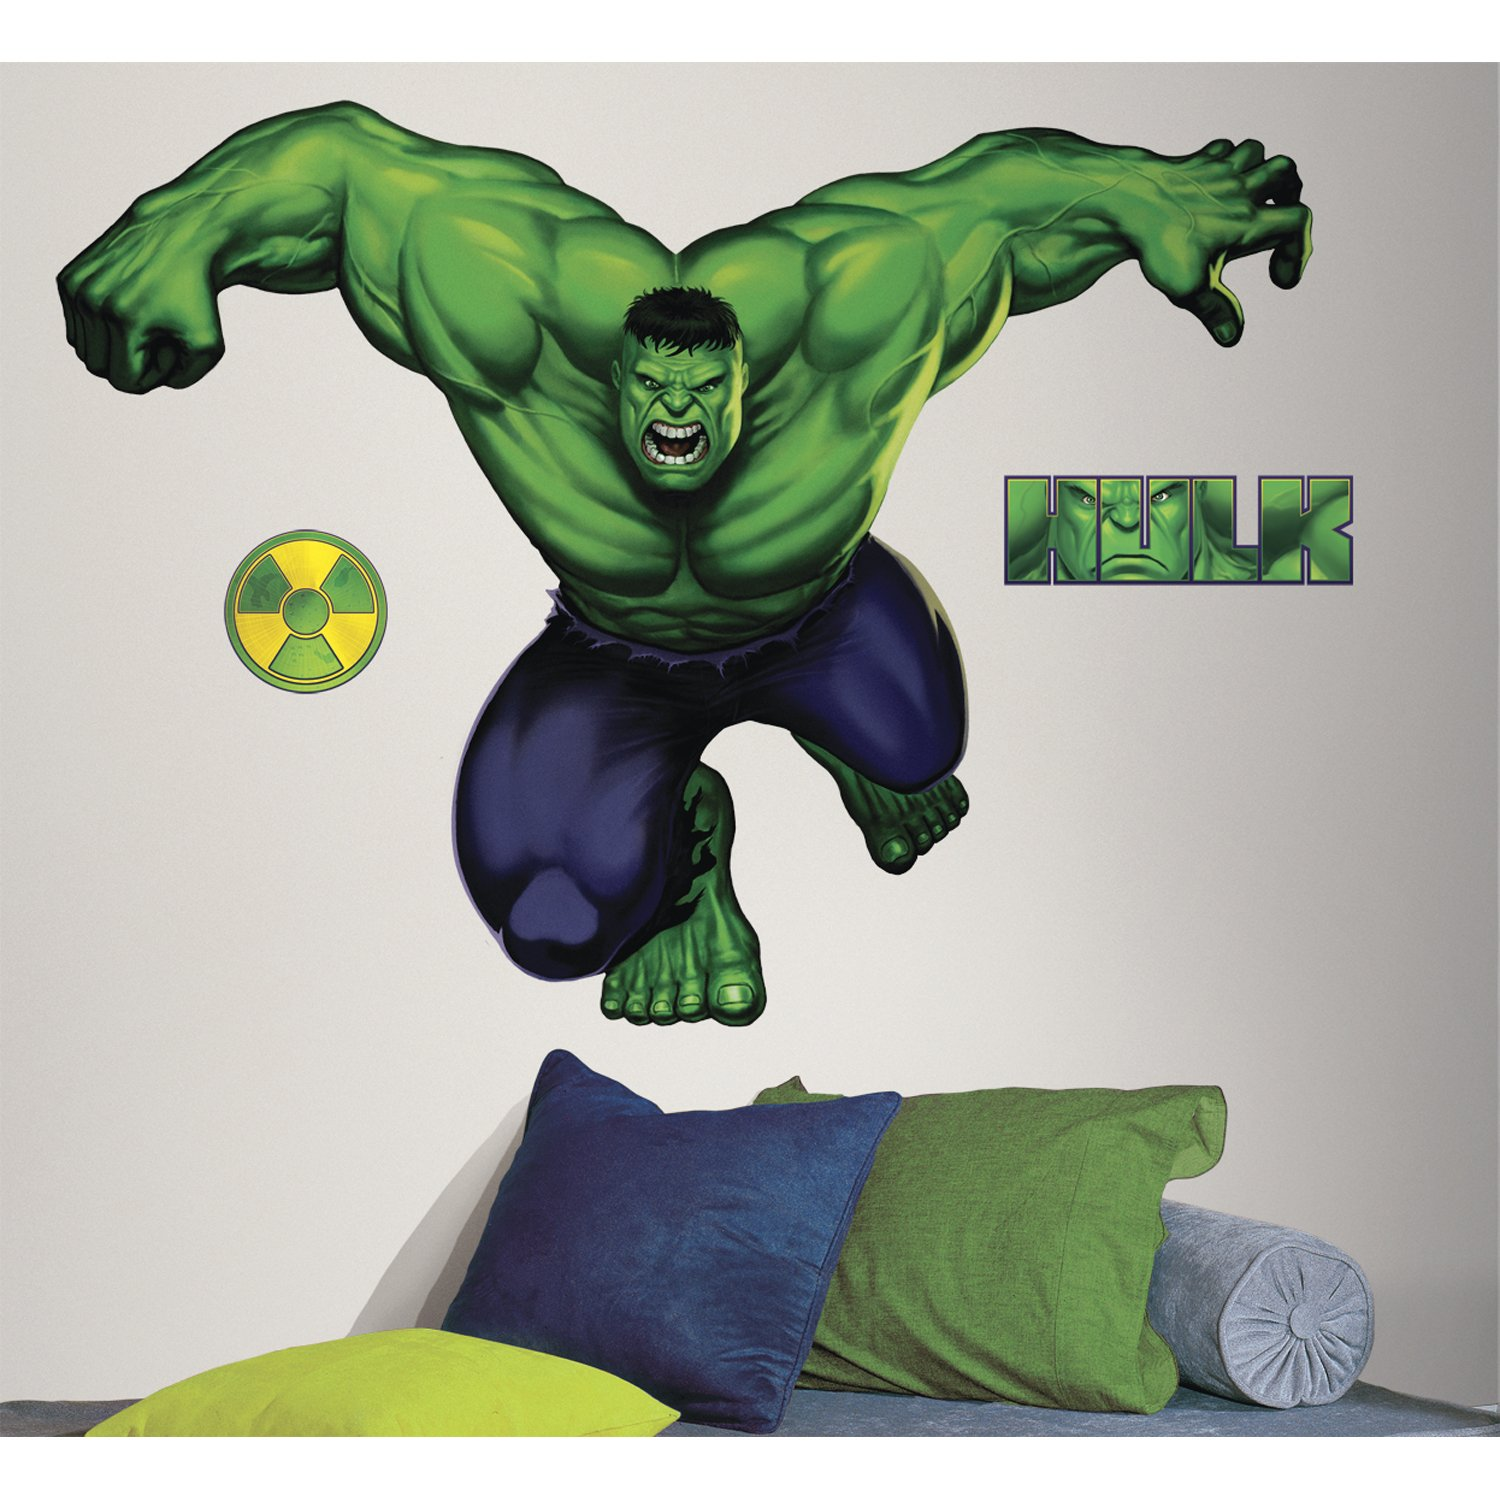 Roommates rmk1484gm hulk peel stick giant wall decal wall roommates rmk1484gm hulk peel stick giant wall decal wall decor stickers amazon amipublicfo Image collections